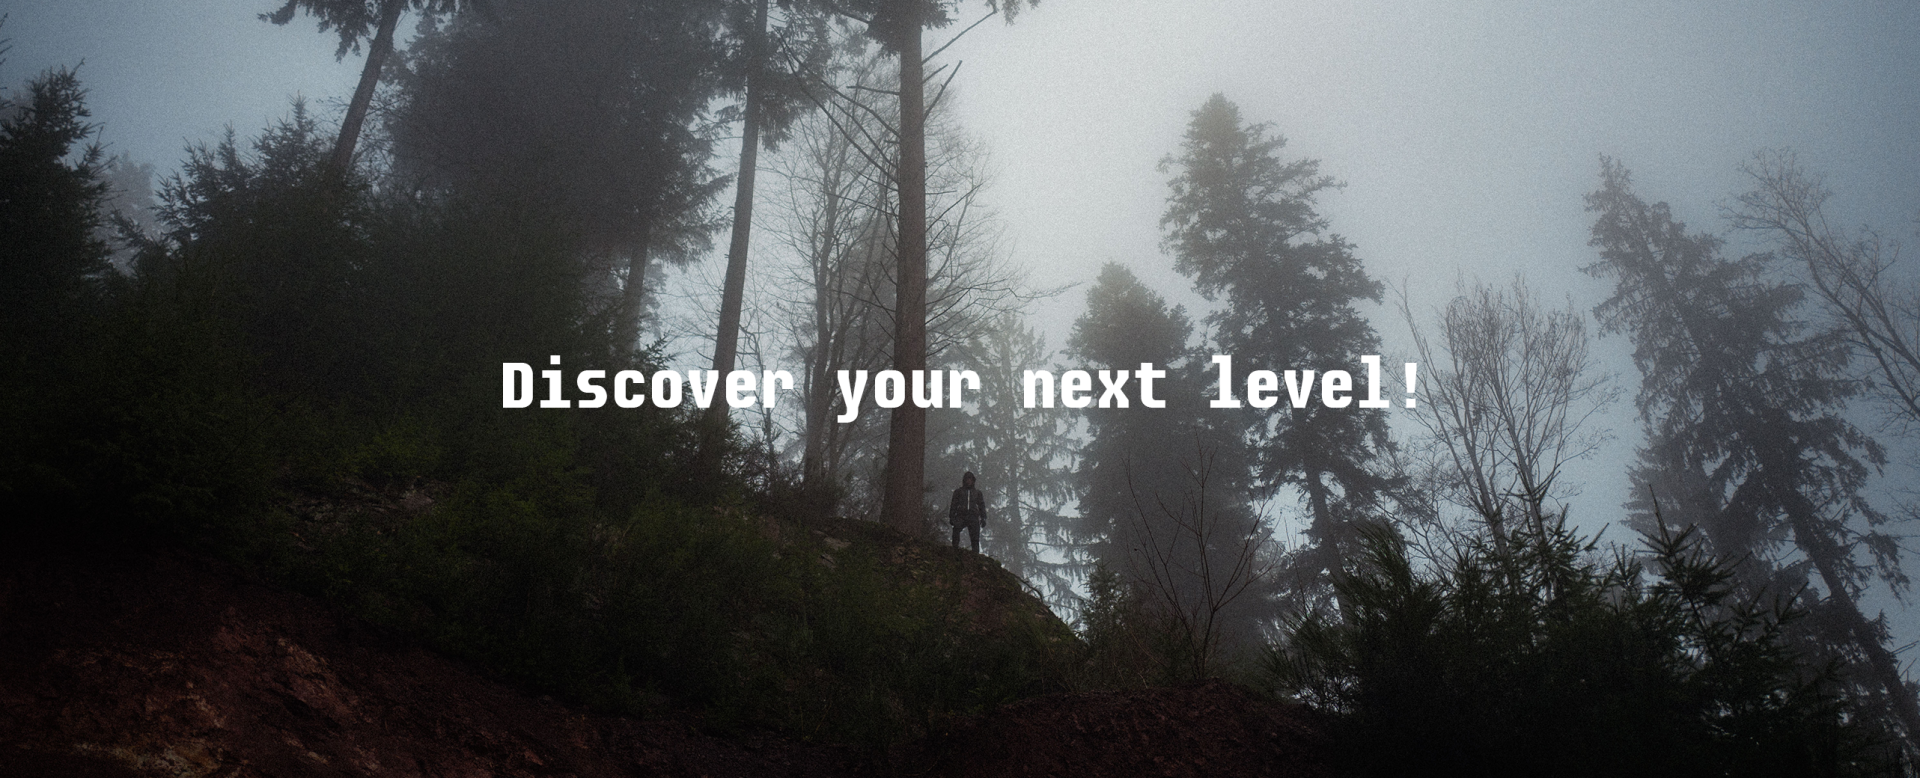 Discover tapio - Discover your next level